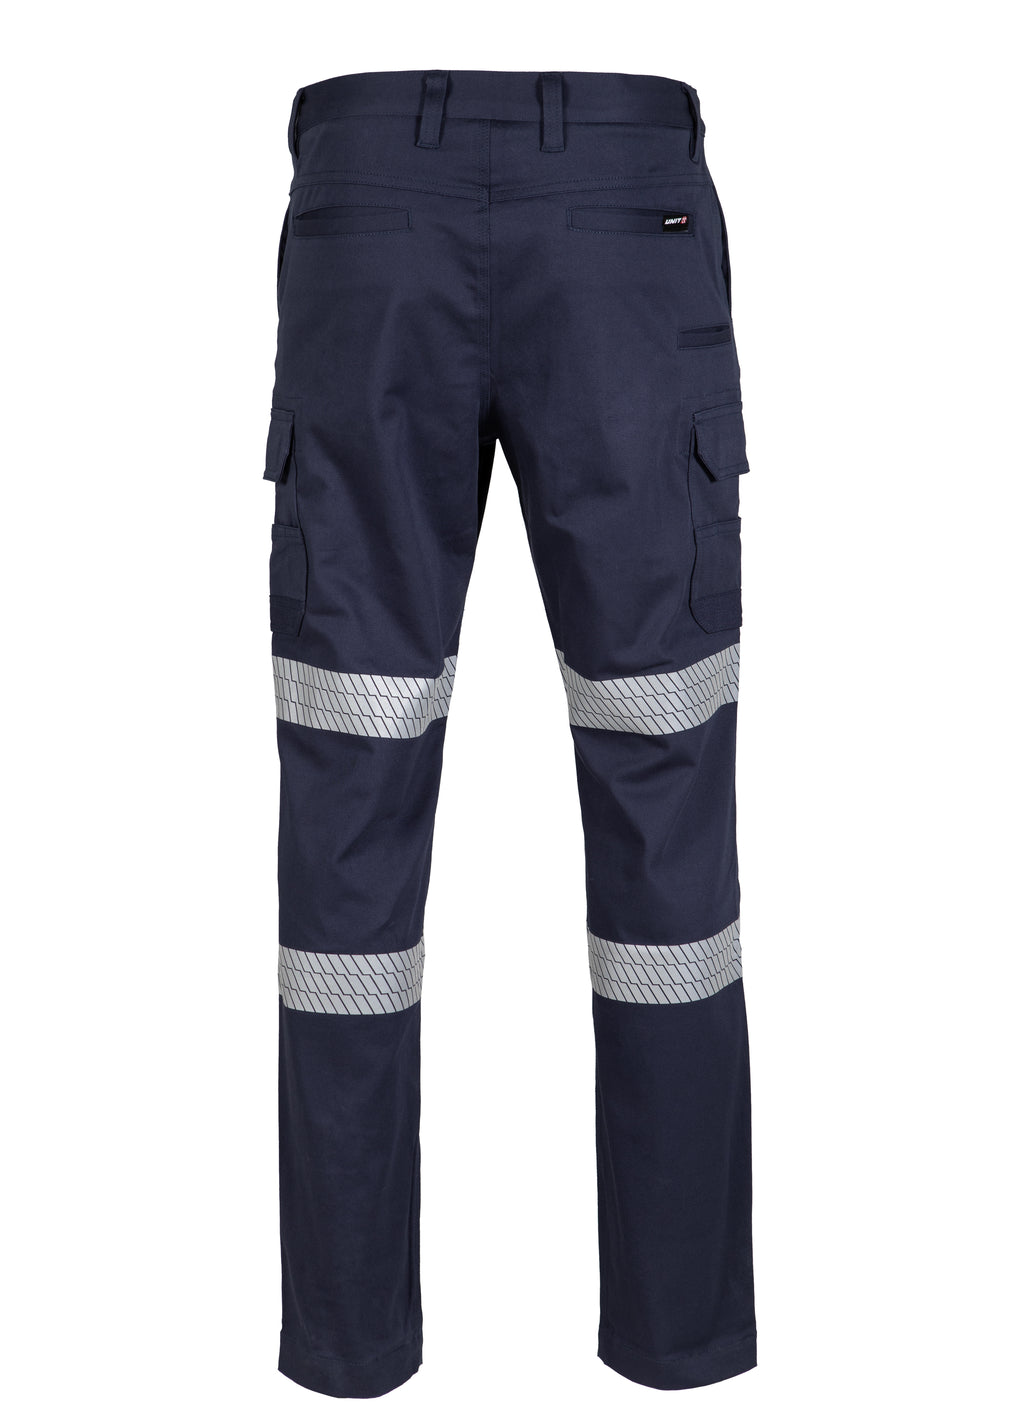 Strike Reflective Work Pants